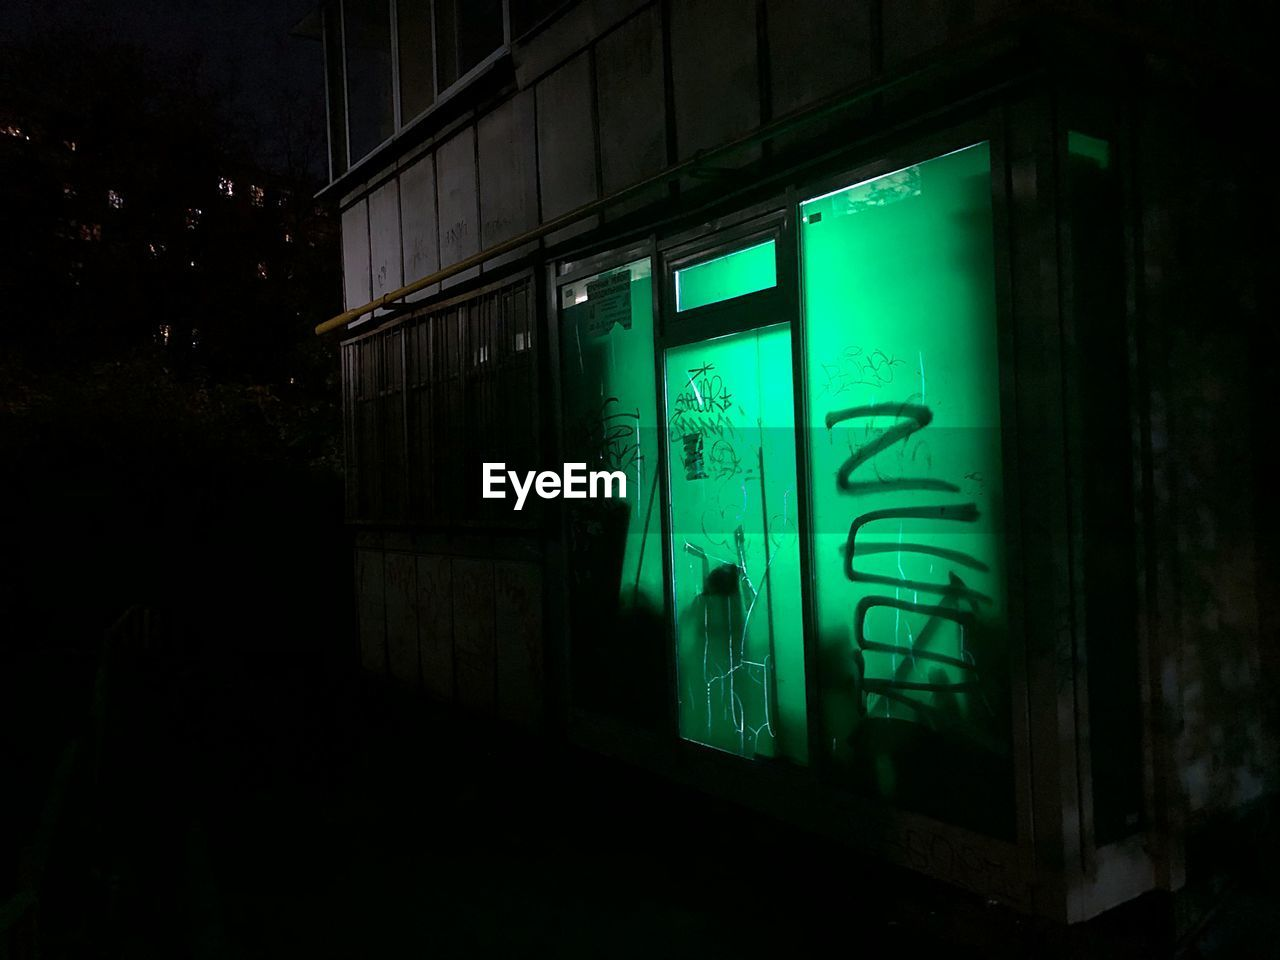 night, architecture, built structure, green color, illuminated, building exterior, no people, text, communication, wall - building feature, building, window, glass - material, western script, dark, outdoors, open, reflection, door